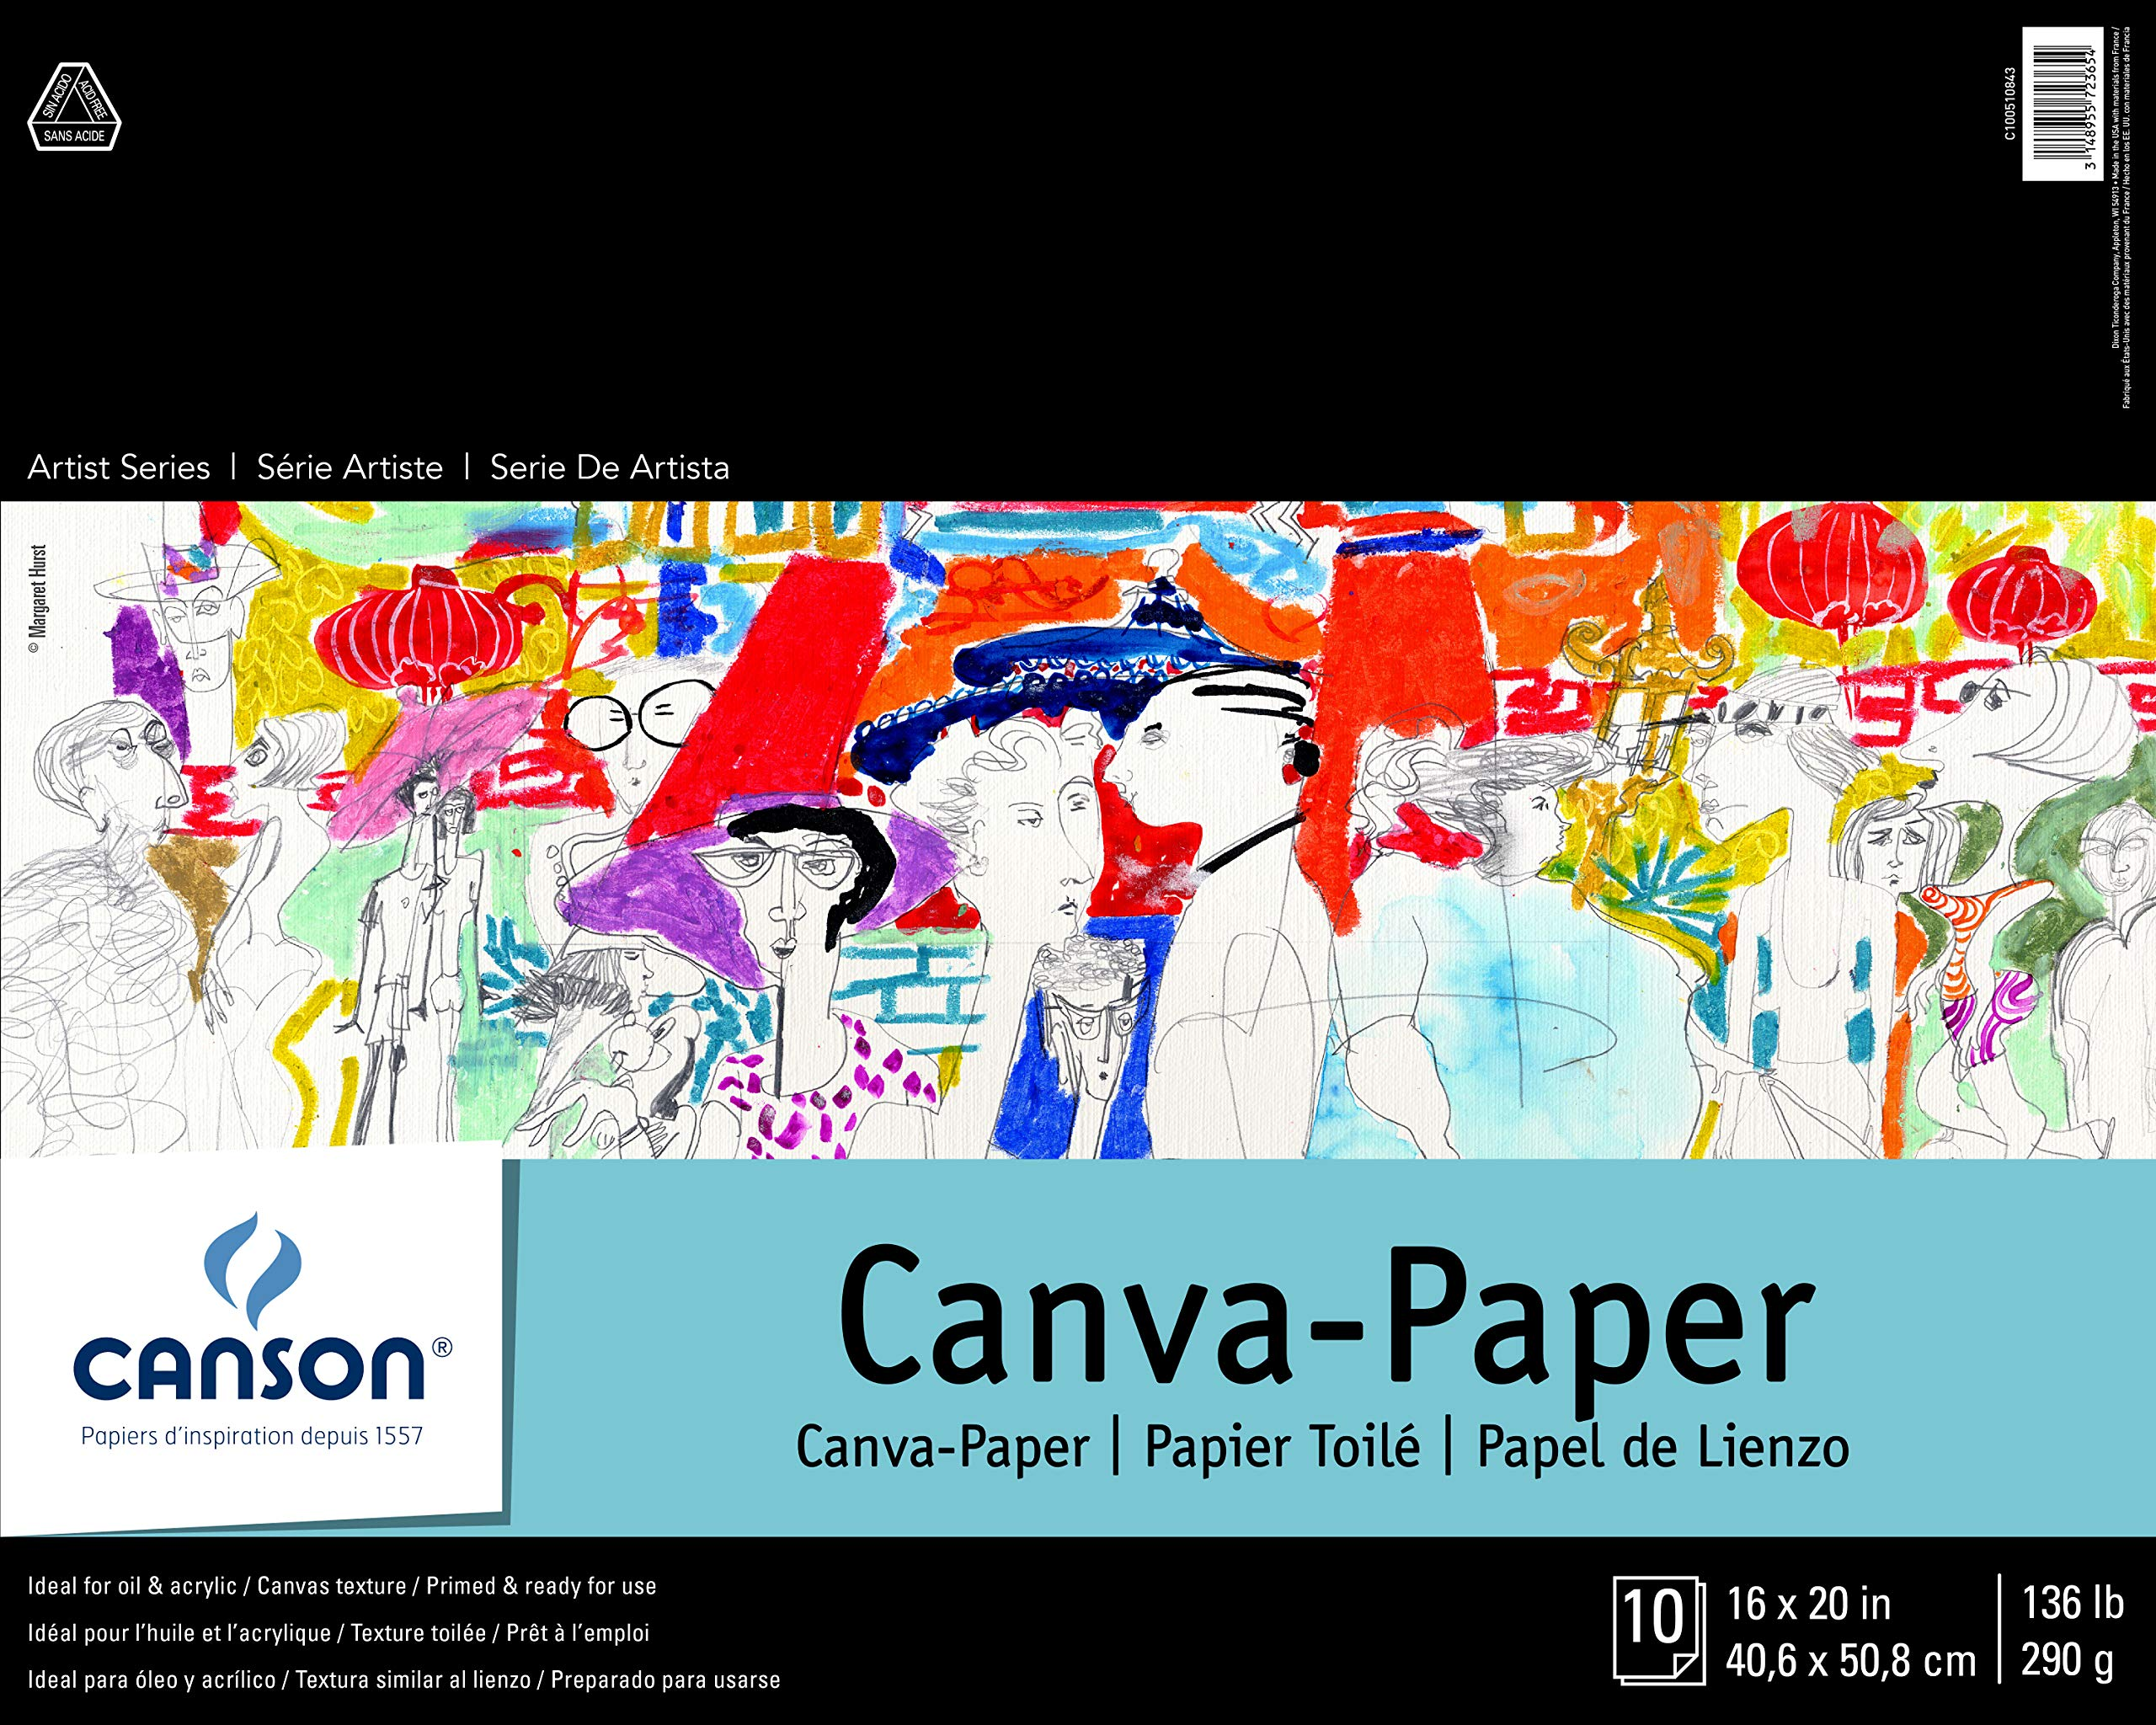 CANSON Foundation Series Canva-Paper Pad Primed for Oil or Acrylic Paints, Top Bound, 136 Pound, 16 x 20 Inch, 10 Sheets, 16'' x 20'', 0 by Canson